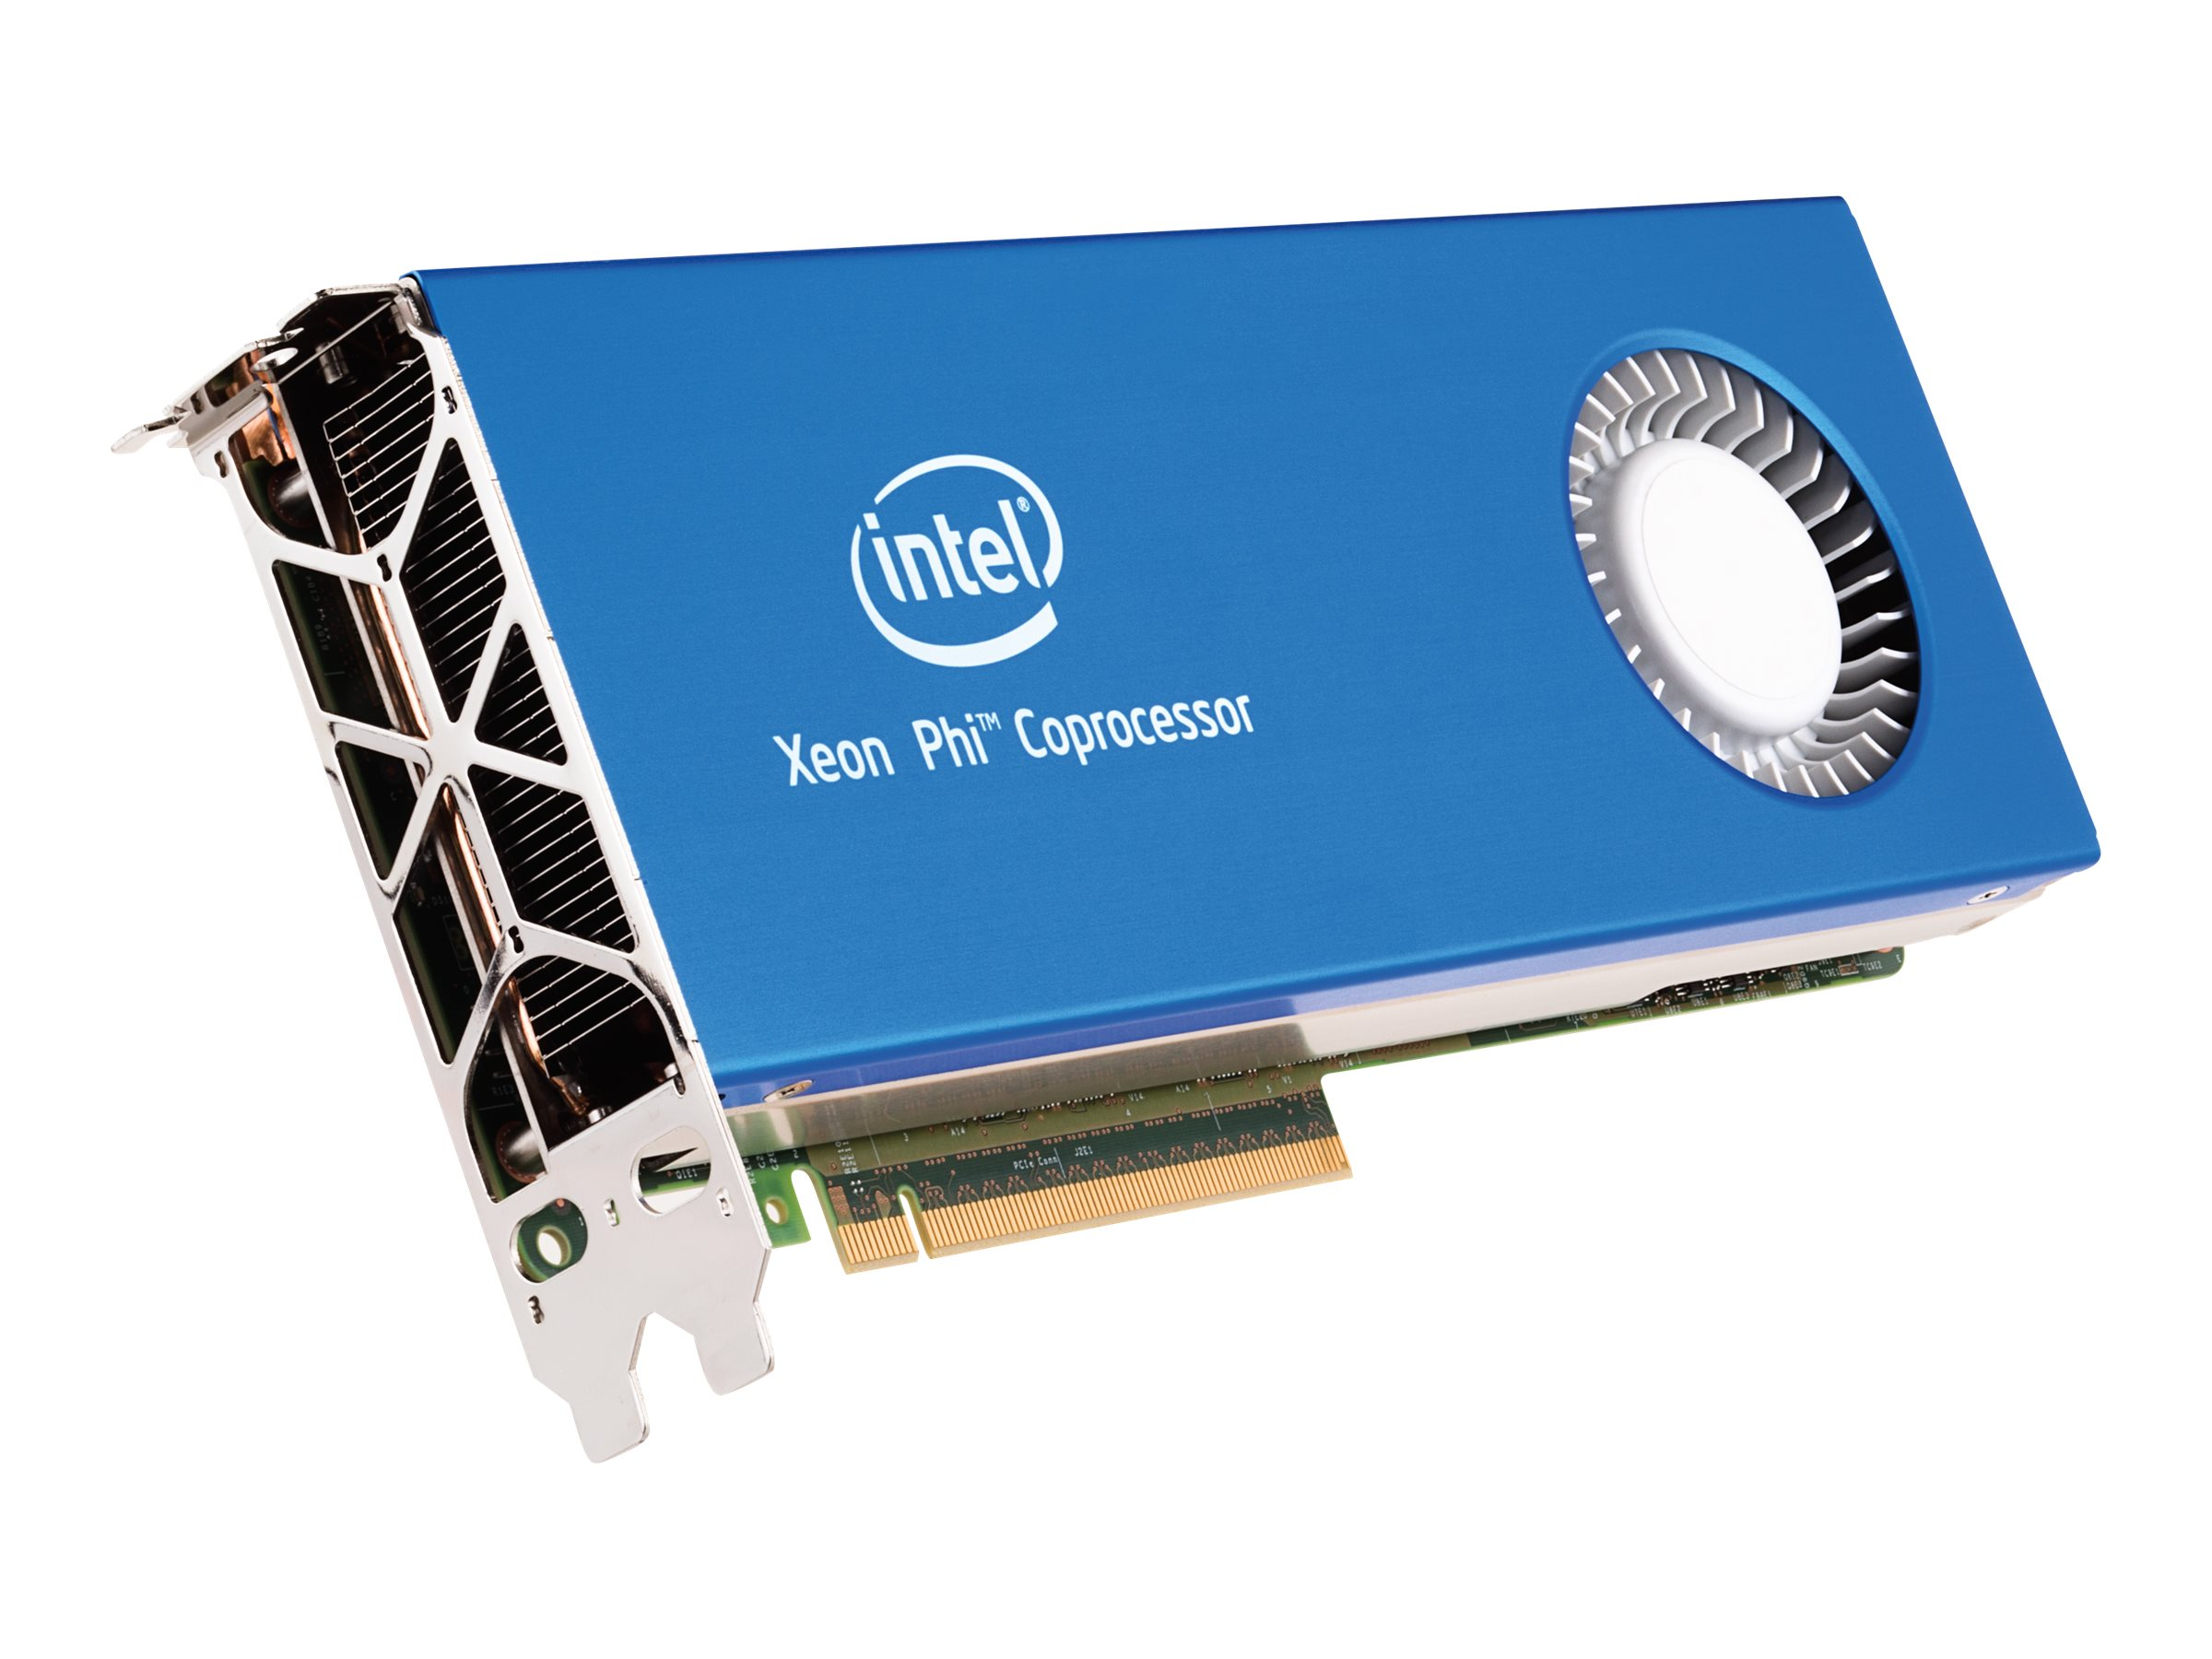 Intel Processor, Xeon 60C Phi 5110P 1.053GHz 30MB 225W, SC5110P, 16344916, Processor Upgrades